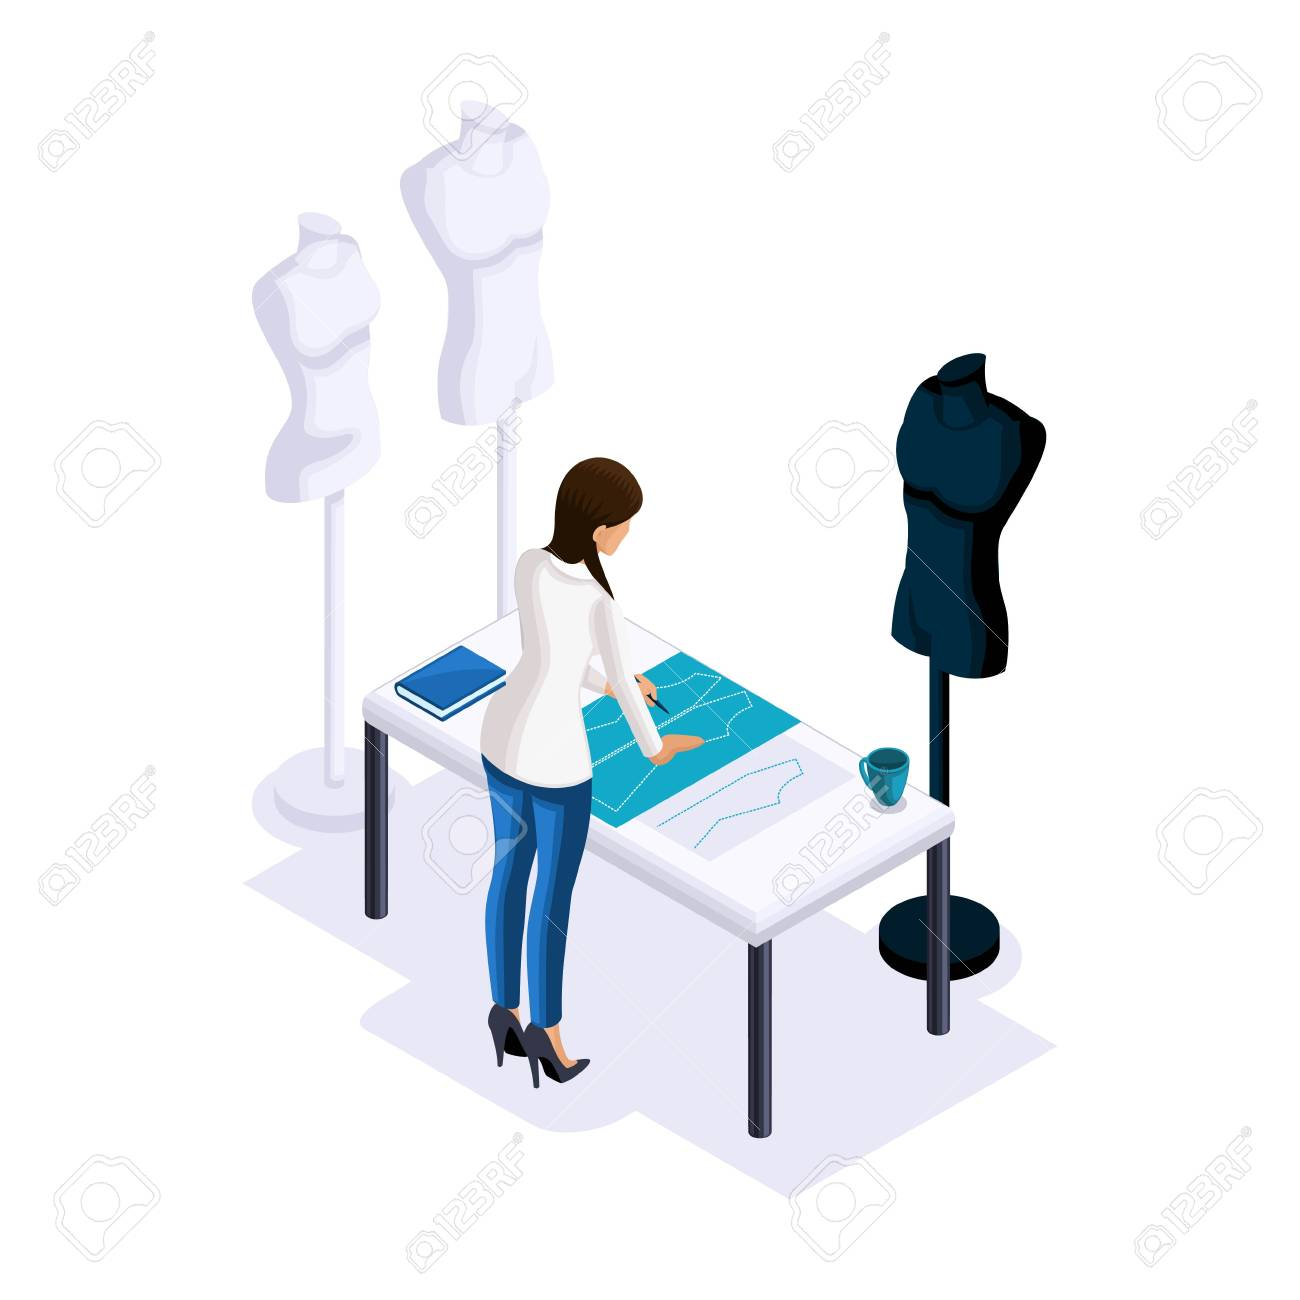 Designer Sale Clothes | Isometry Of A Tailor The Designer Makes Patterns Creating Clothes